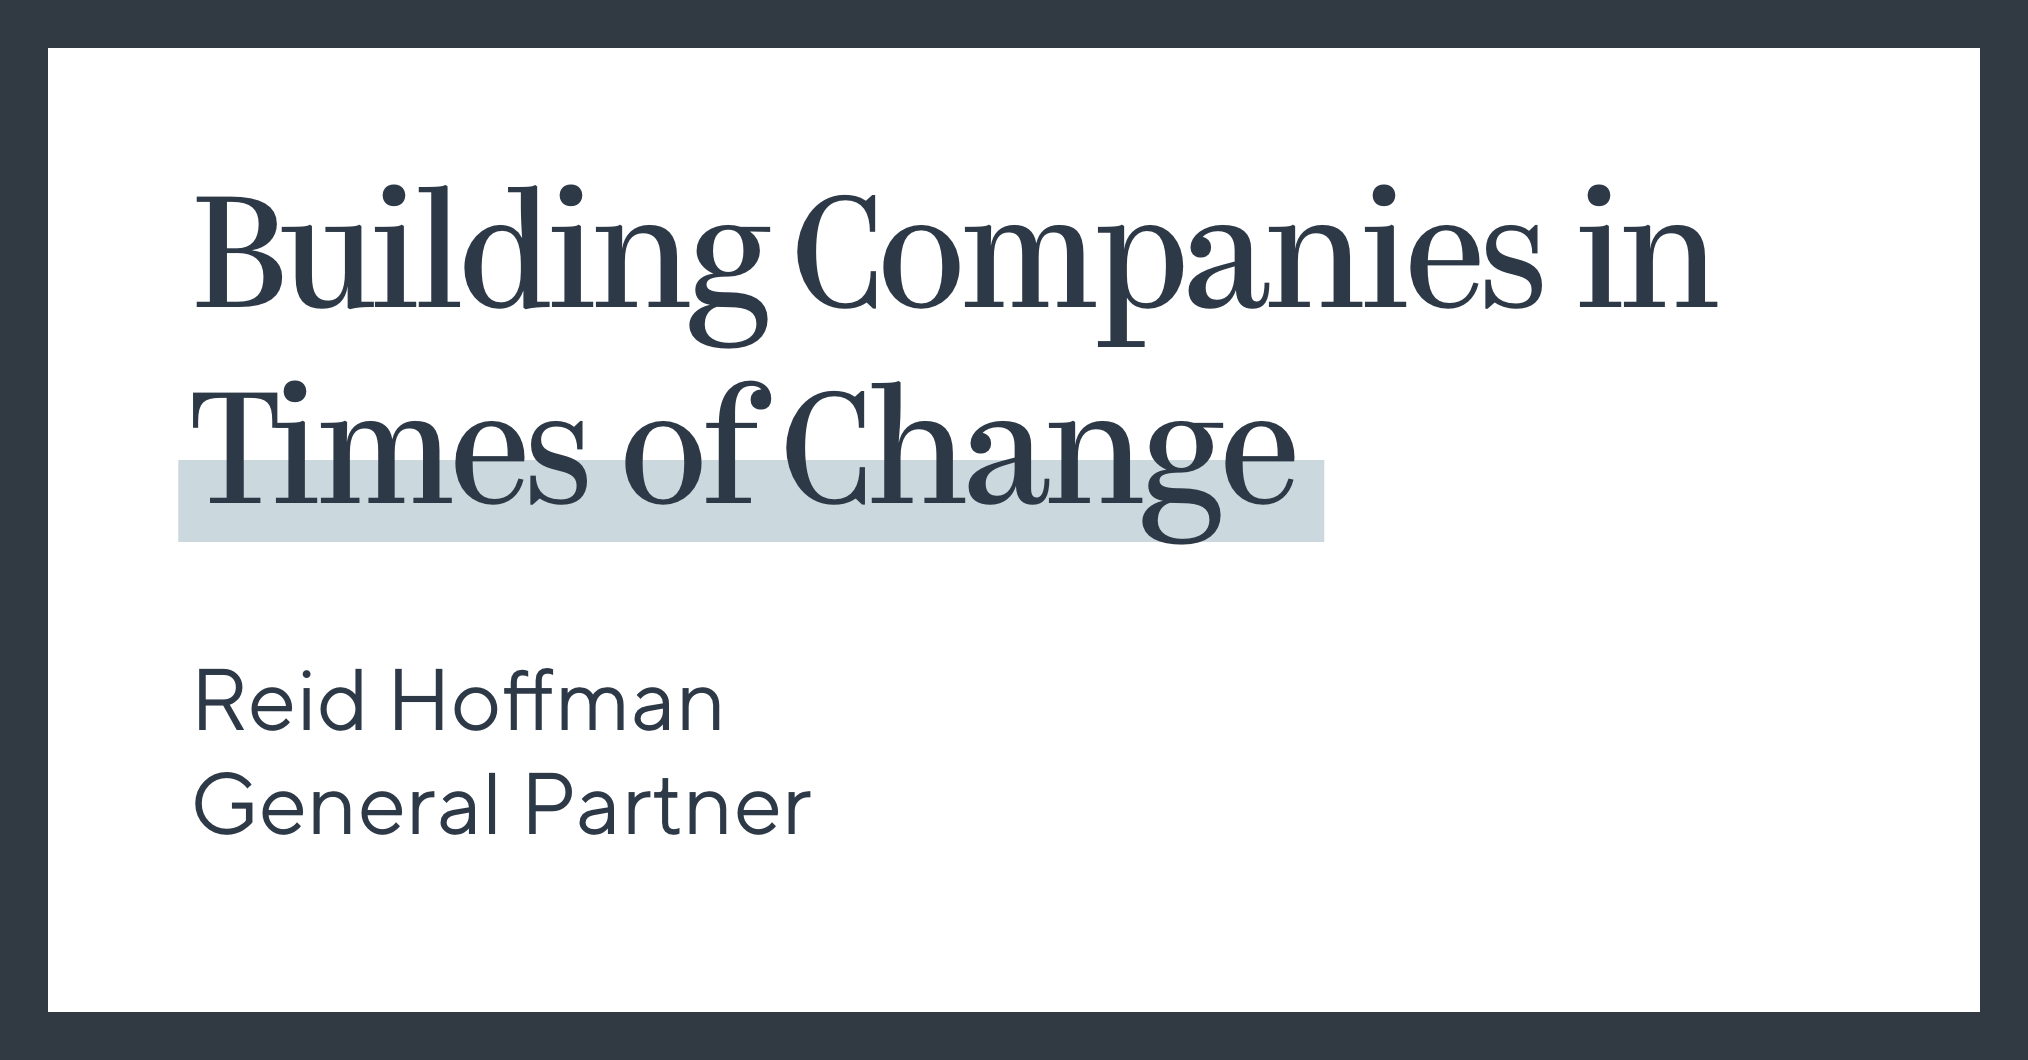 Building Companies in Times of Change